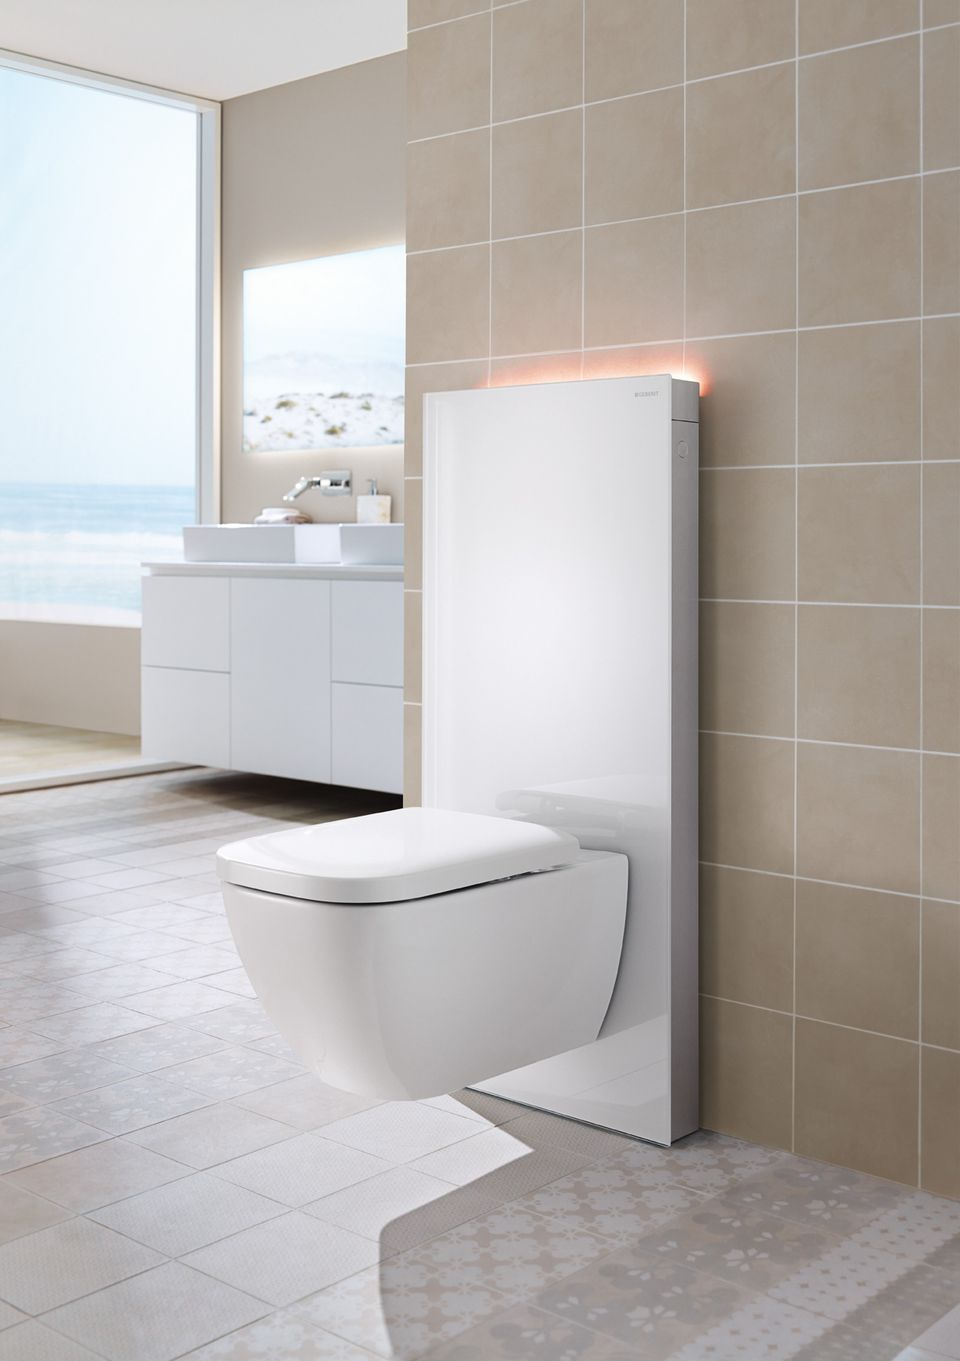 toilets for small bathrooms. The Geberit Monolith 8 Wall Mounted Toilets for Tiny Bathrooms